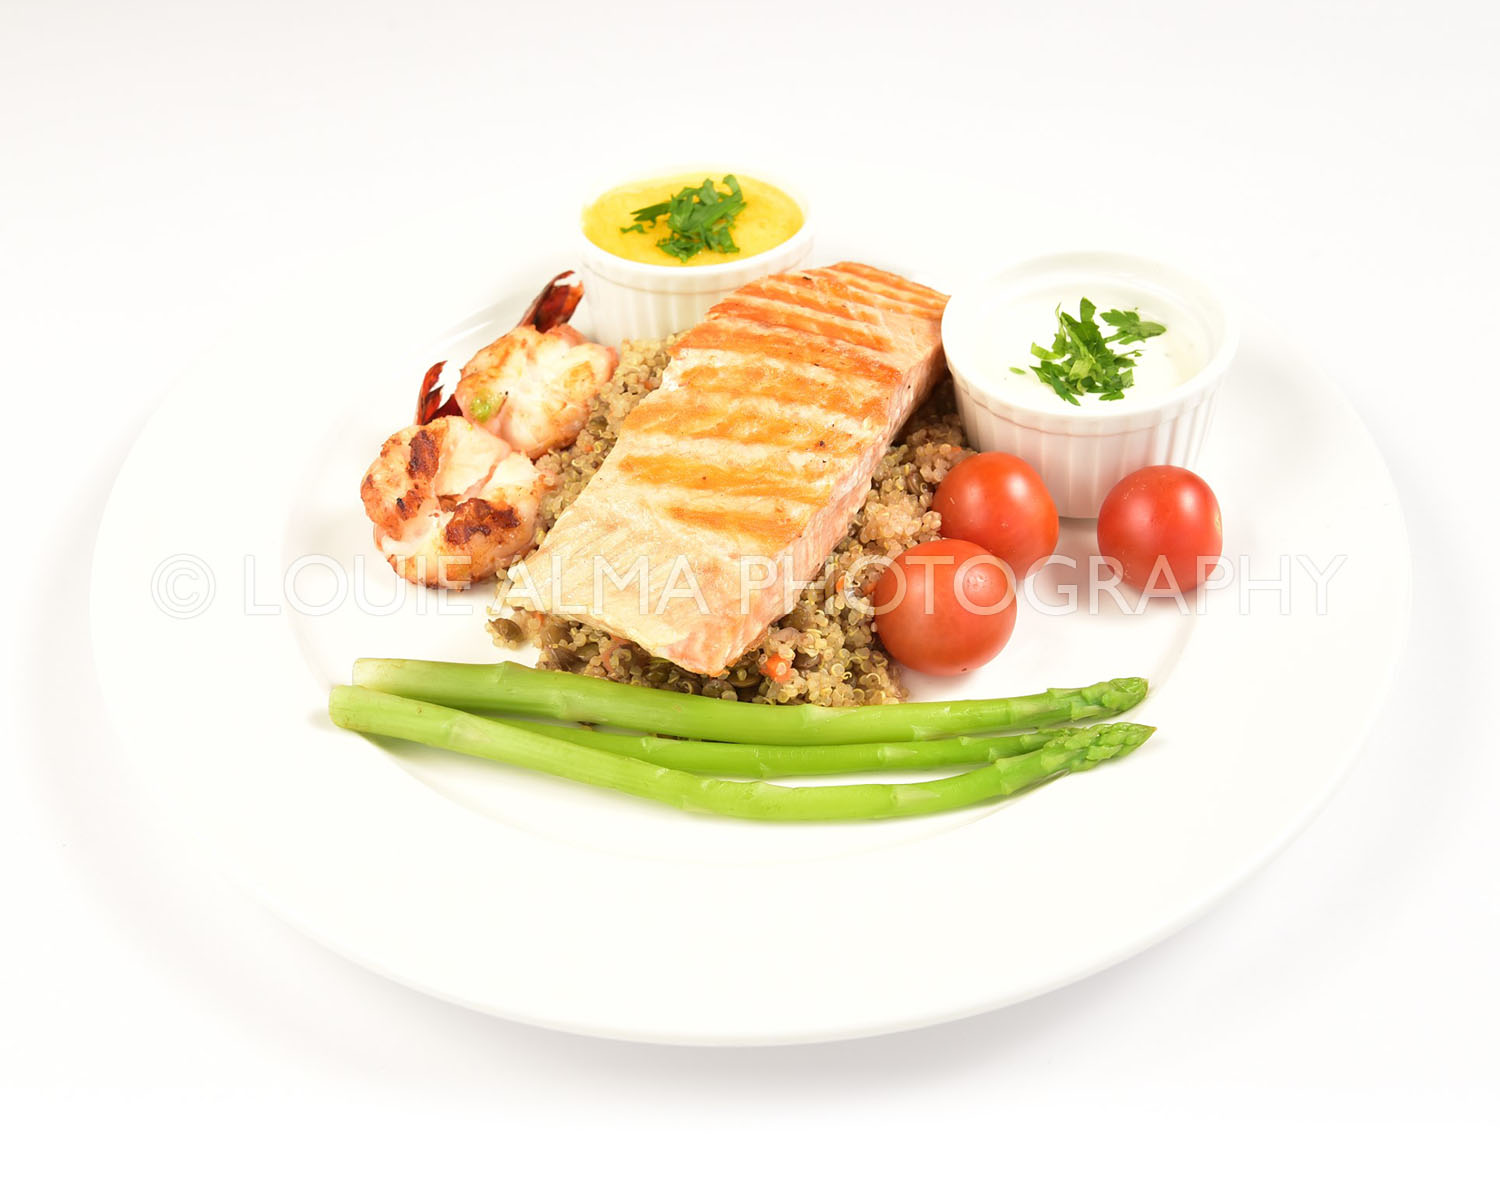 LouieAlmaPhotography_Food_Protein&Carb_SeafoodDeMare